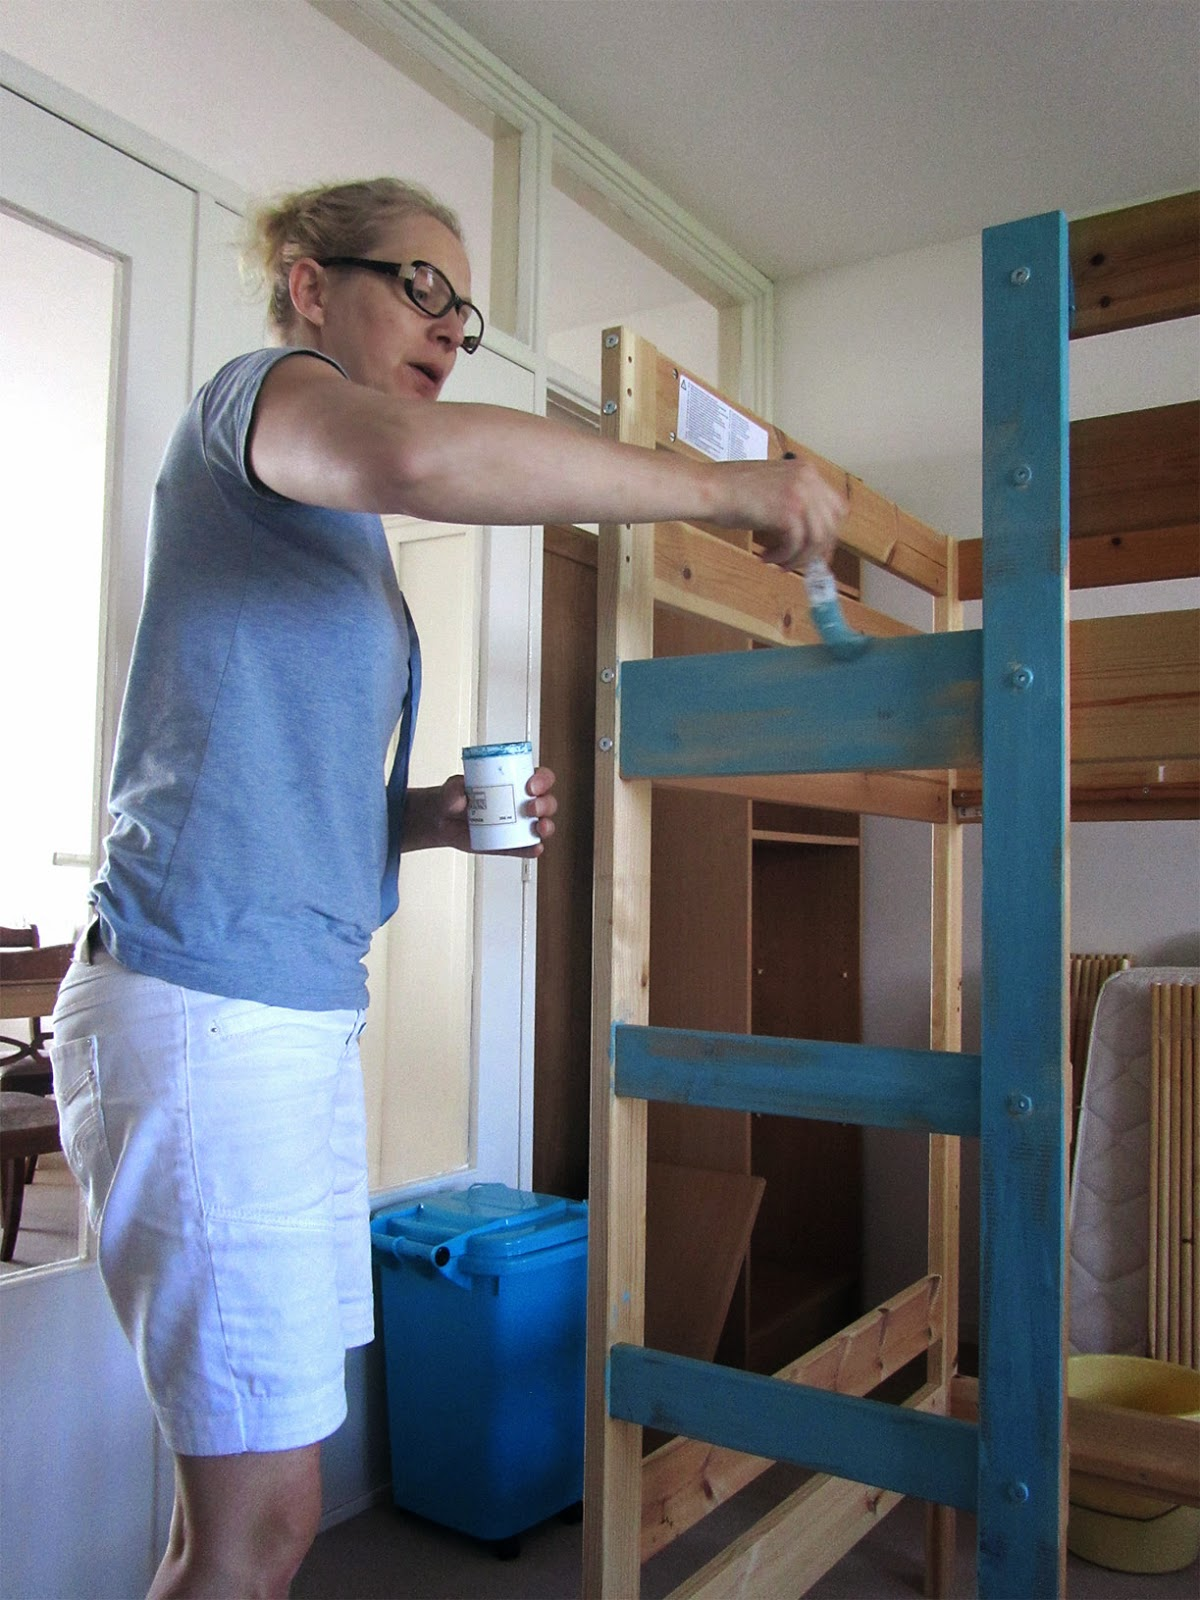 my sister painting the bunk bed